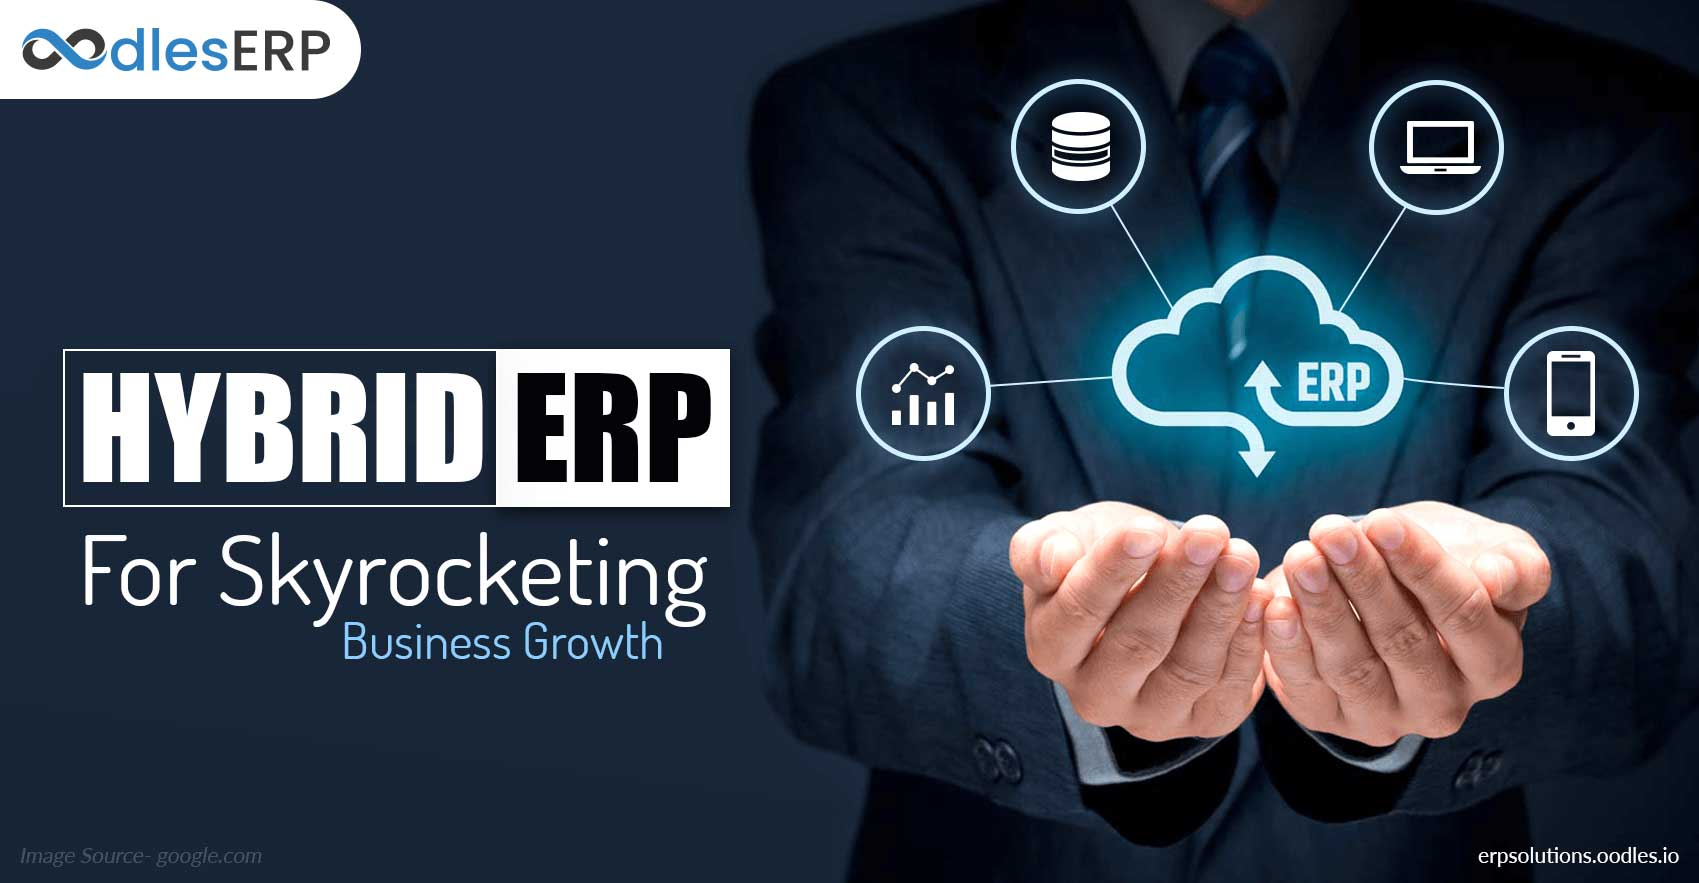 Hybrid ERP For Skyrocketing Business Growth